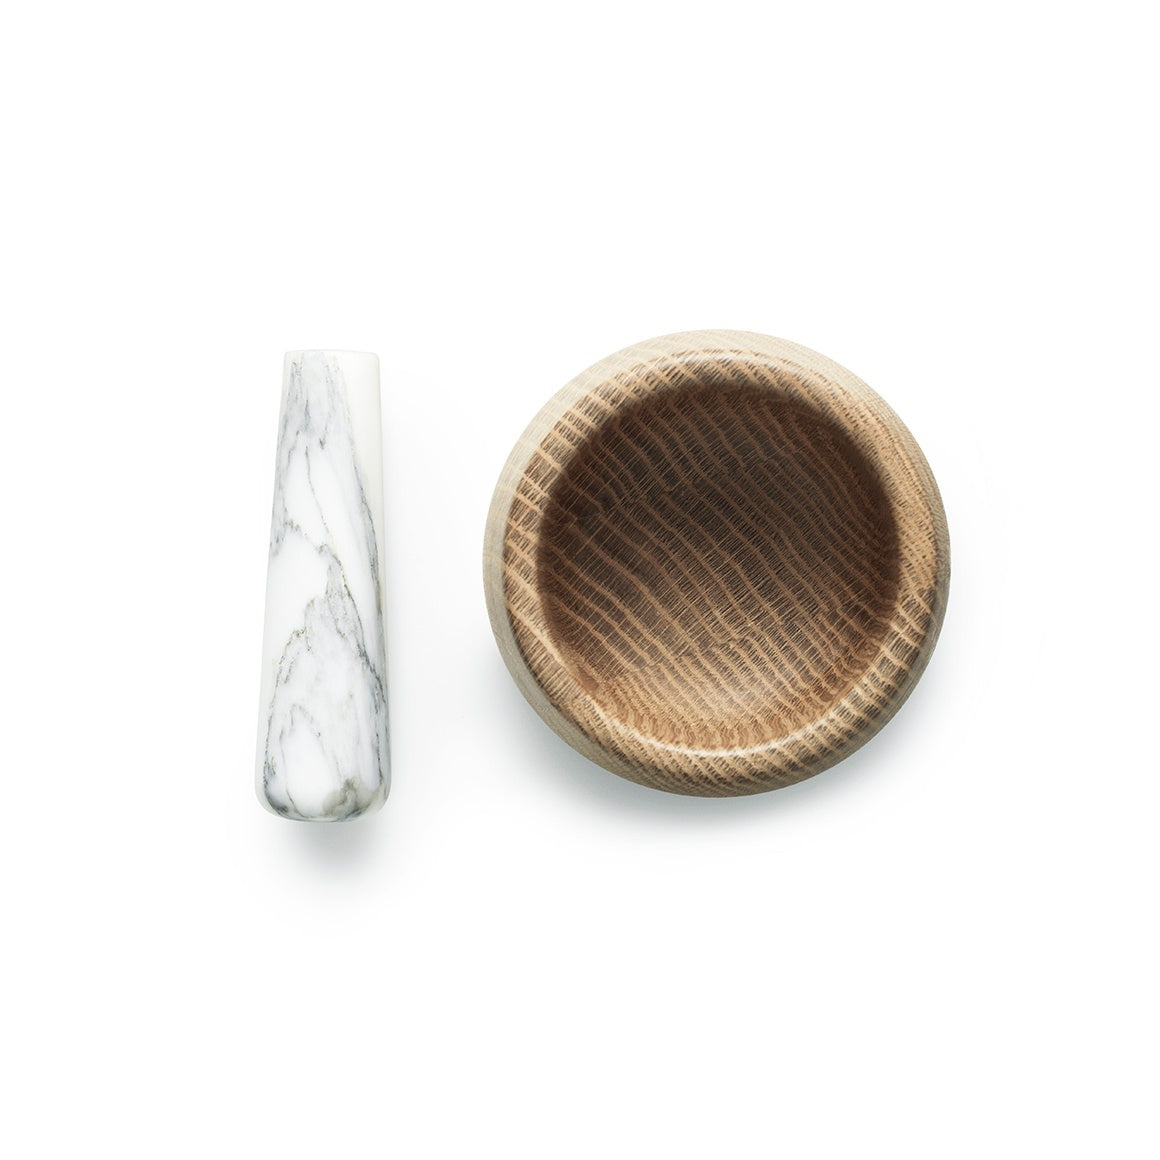 Normann Copenhagen Craft Mortar & Pestle - Eclectic Cool  - 3